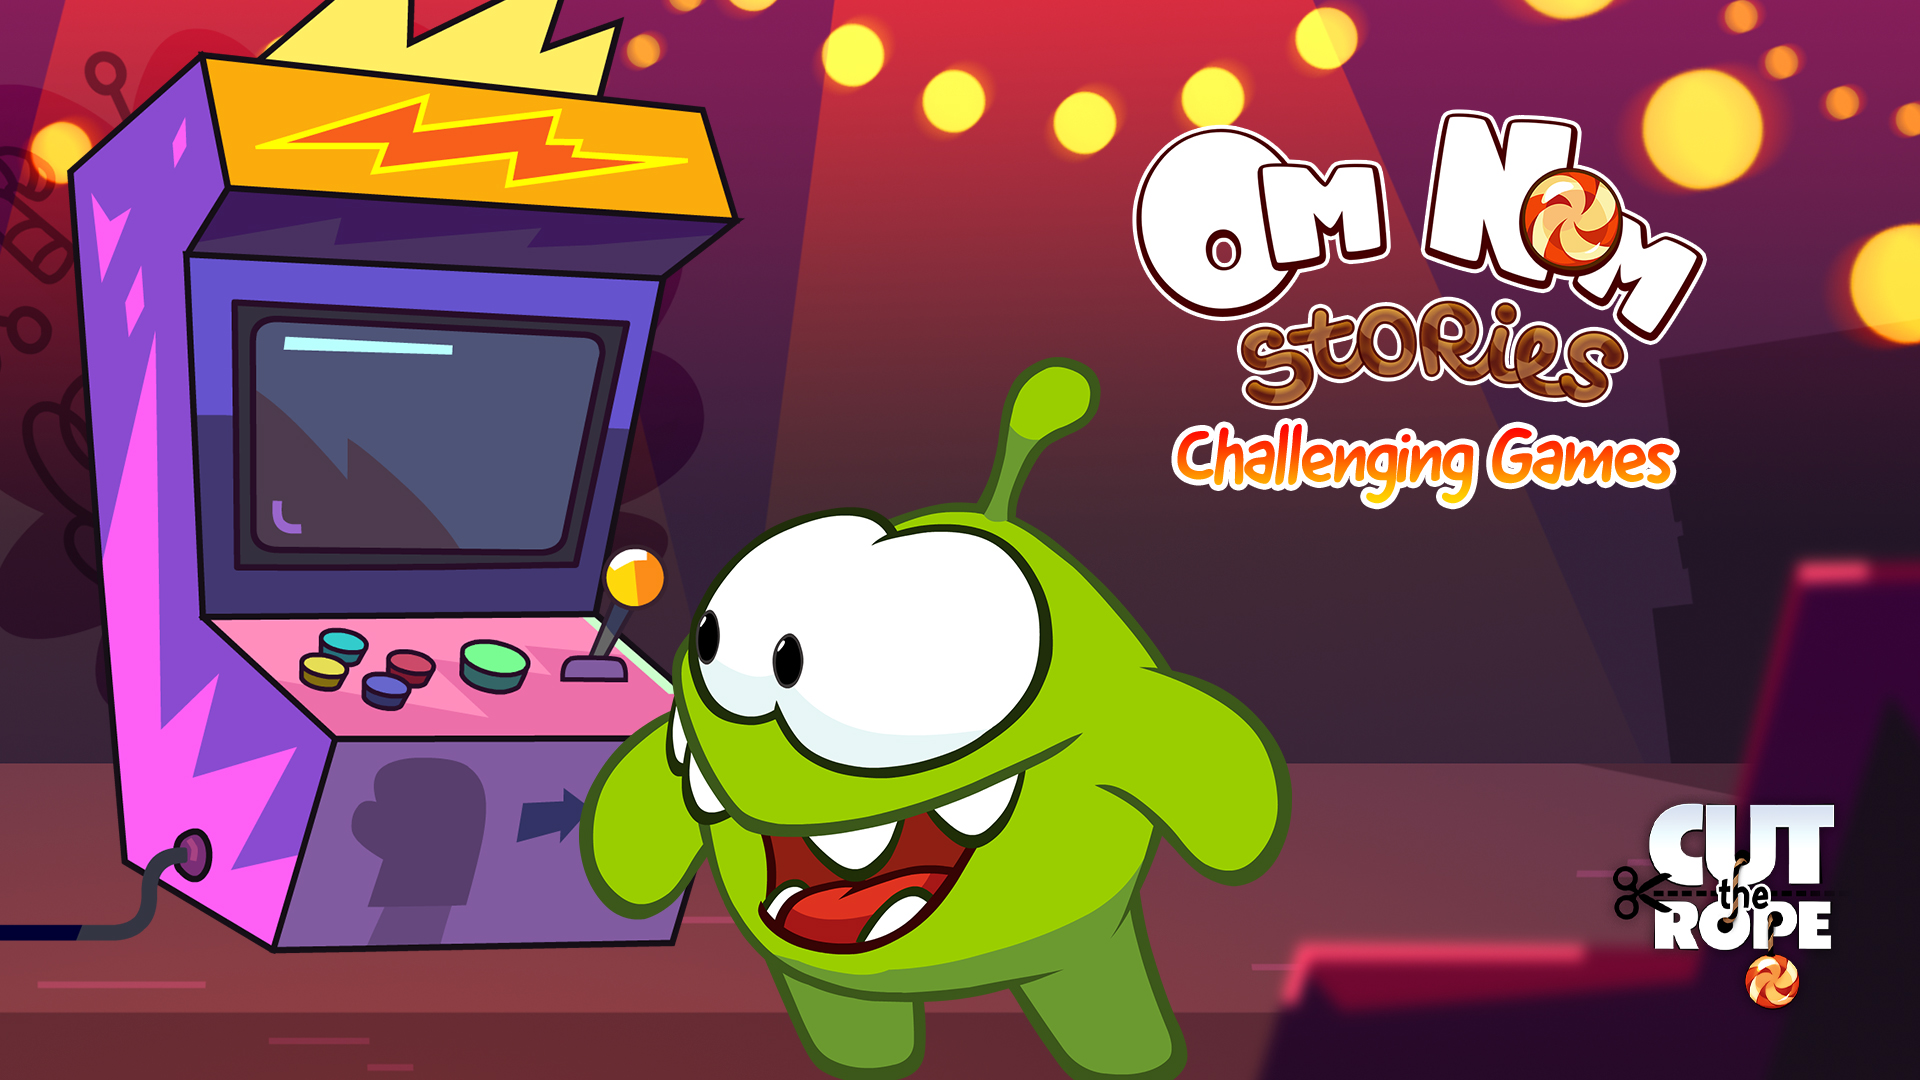 Cut The Rope: Om Nom Stories - Challenging Games